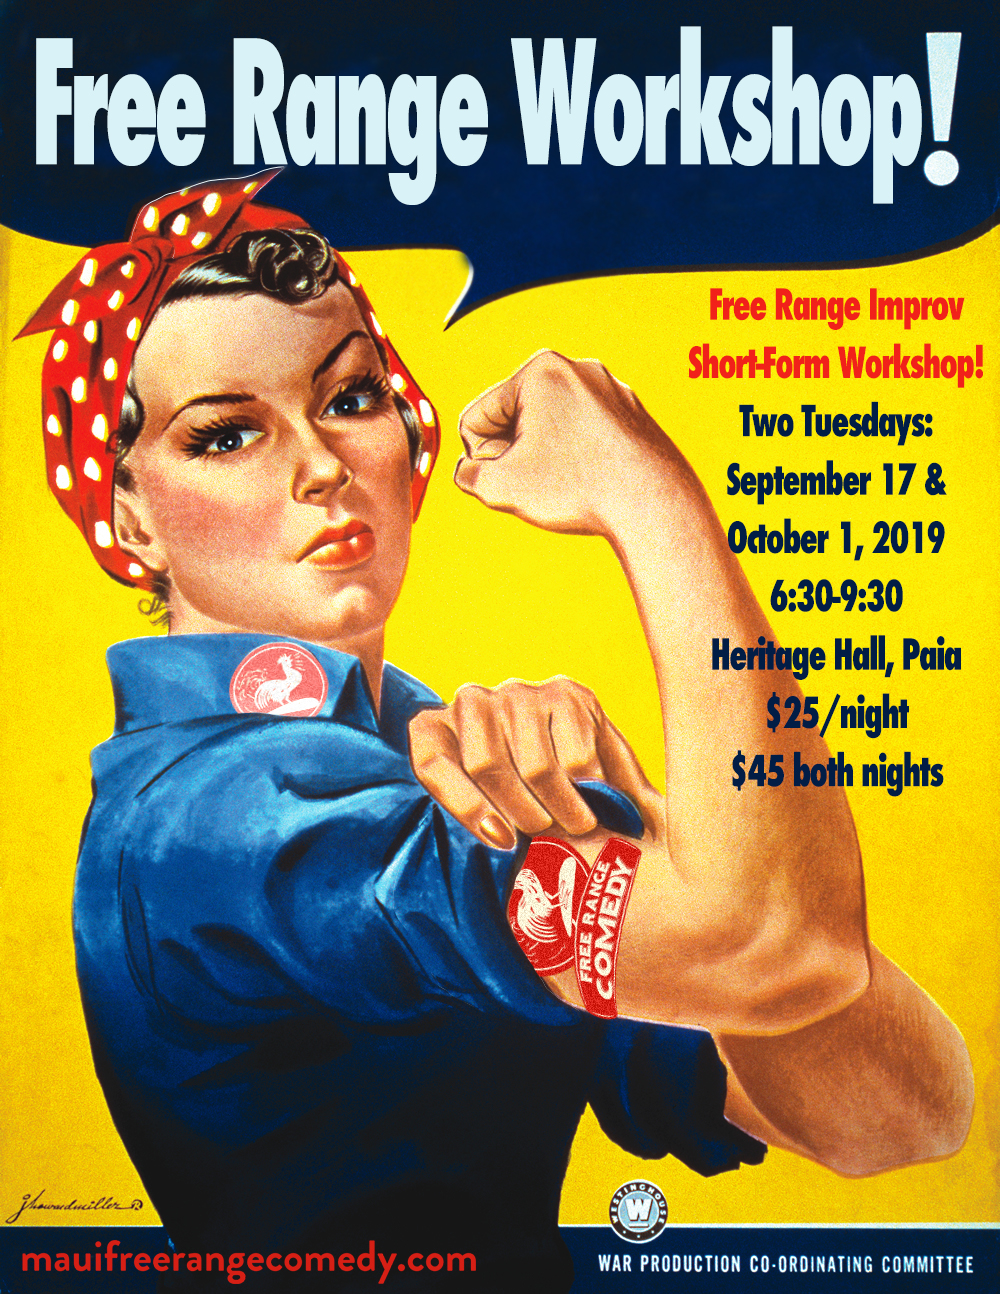 UPCOMING:      SHORT FORM WORKSHOP   Tuesday, September 17, 2019  Tuesday, October 1, 2019  6:30-9:30p  Heritage Hall, Paia, Maui  $25/night  $45 both nights     PAST:   Pupu Platter  August 23rd, 2017